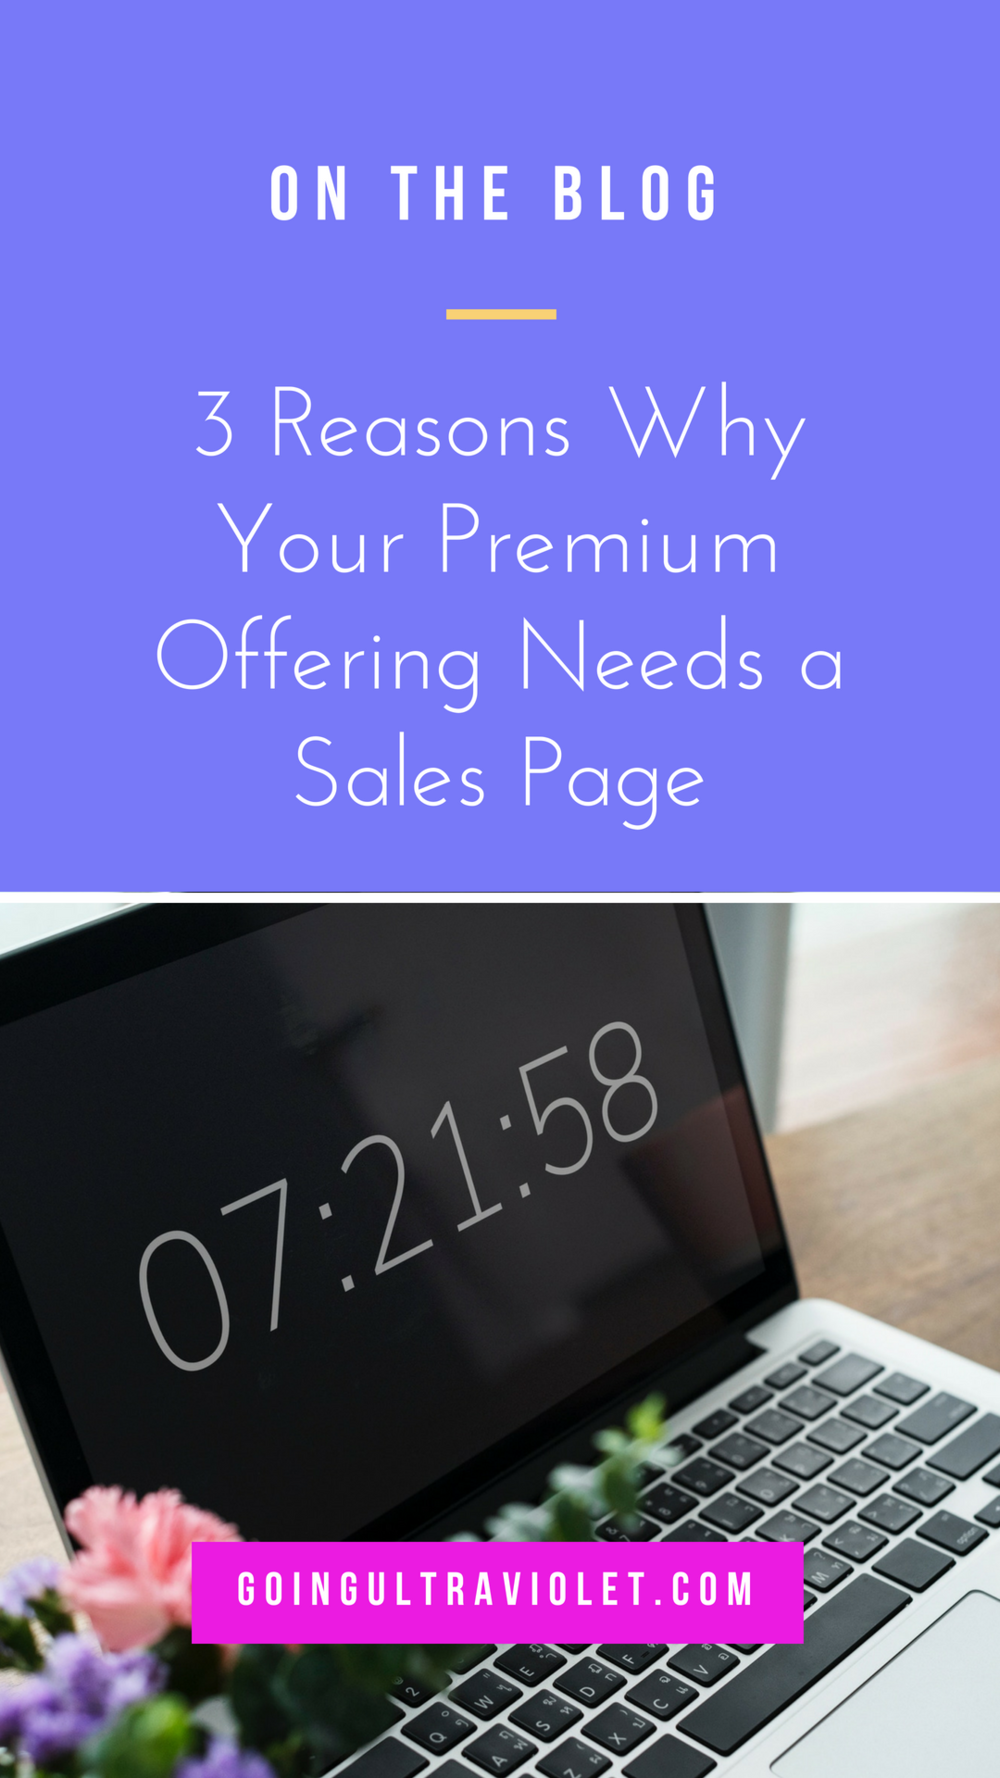 GoingUltraviolet.com | 3 Reasons Why Your Premium Offering Needs a Sales Page